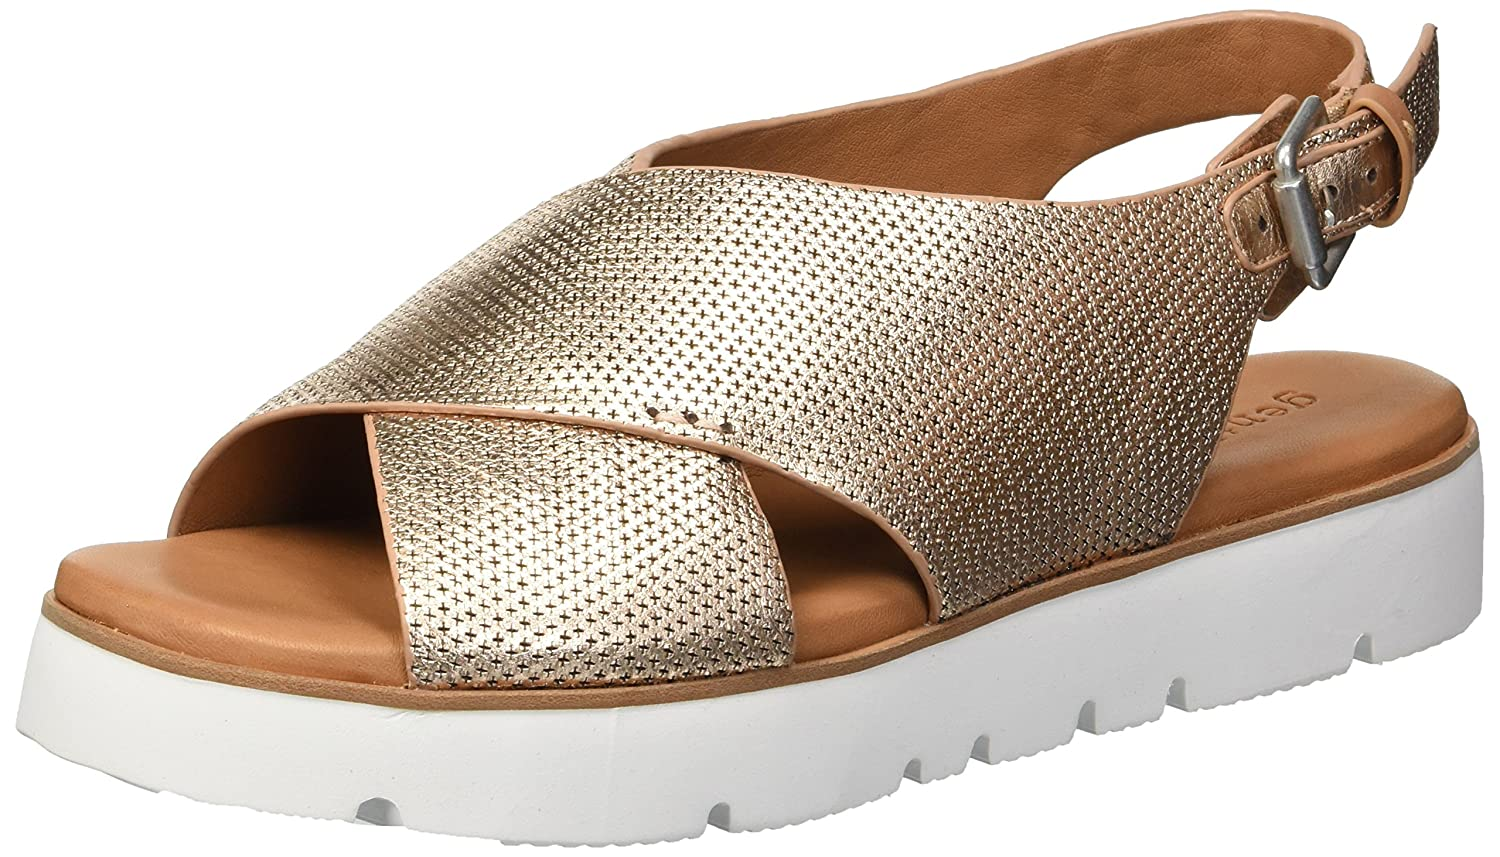 Gentle Souls by Kenneth Cole Women's Kiki Platform Sandal B078B36RWB 8 M US|Rose Gold